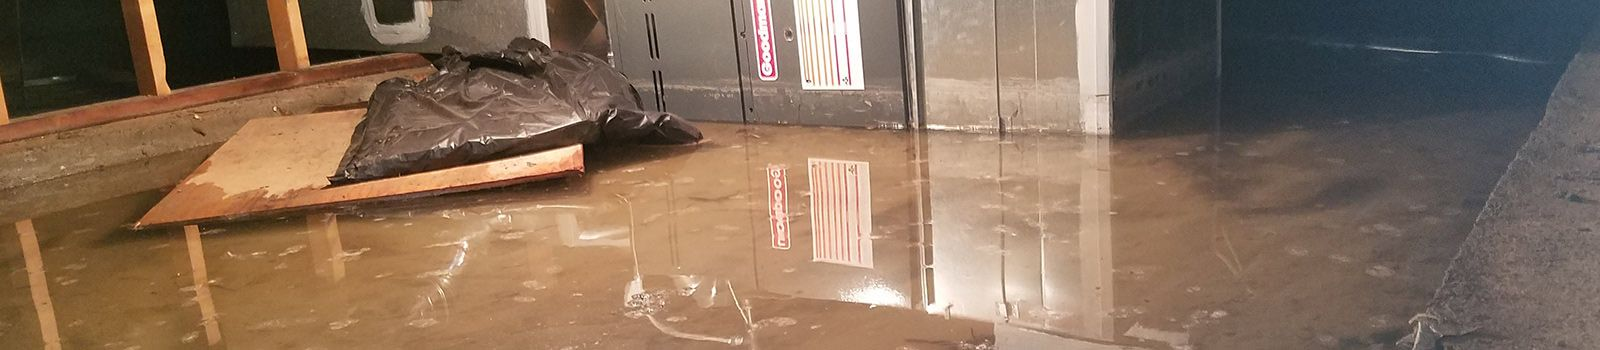 Flooded Crawl Space in Fort Collins home